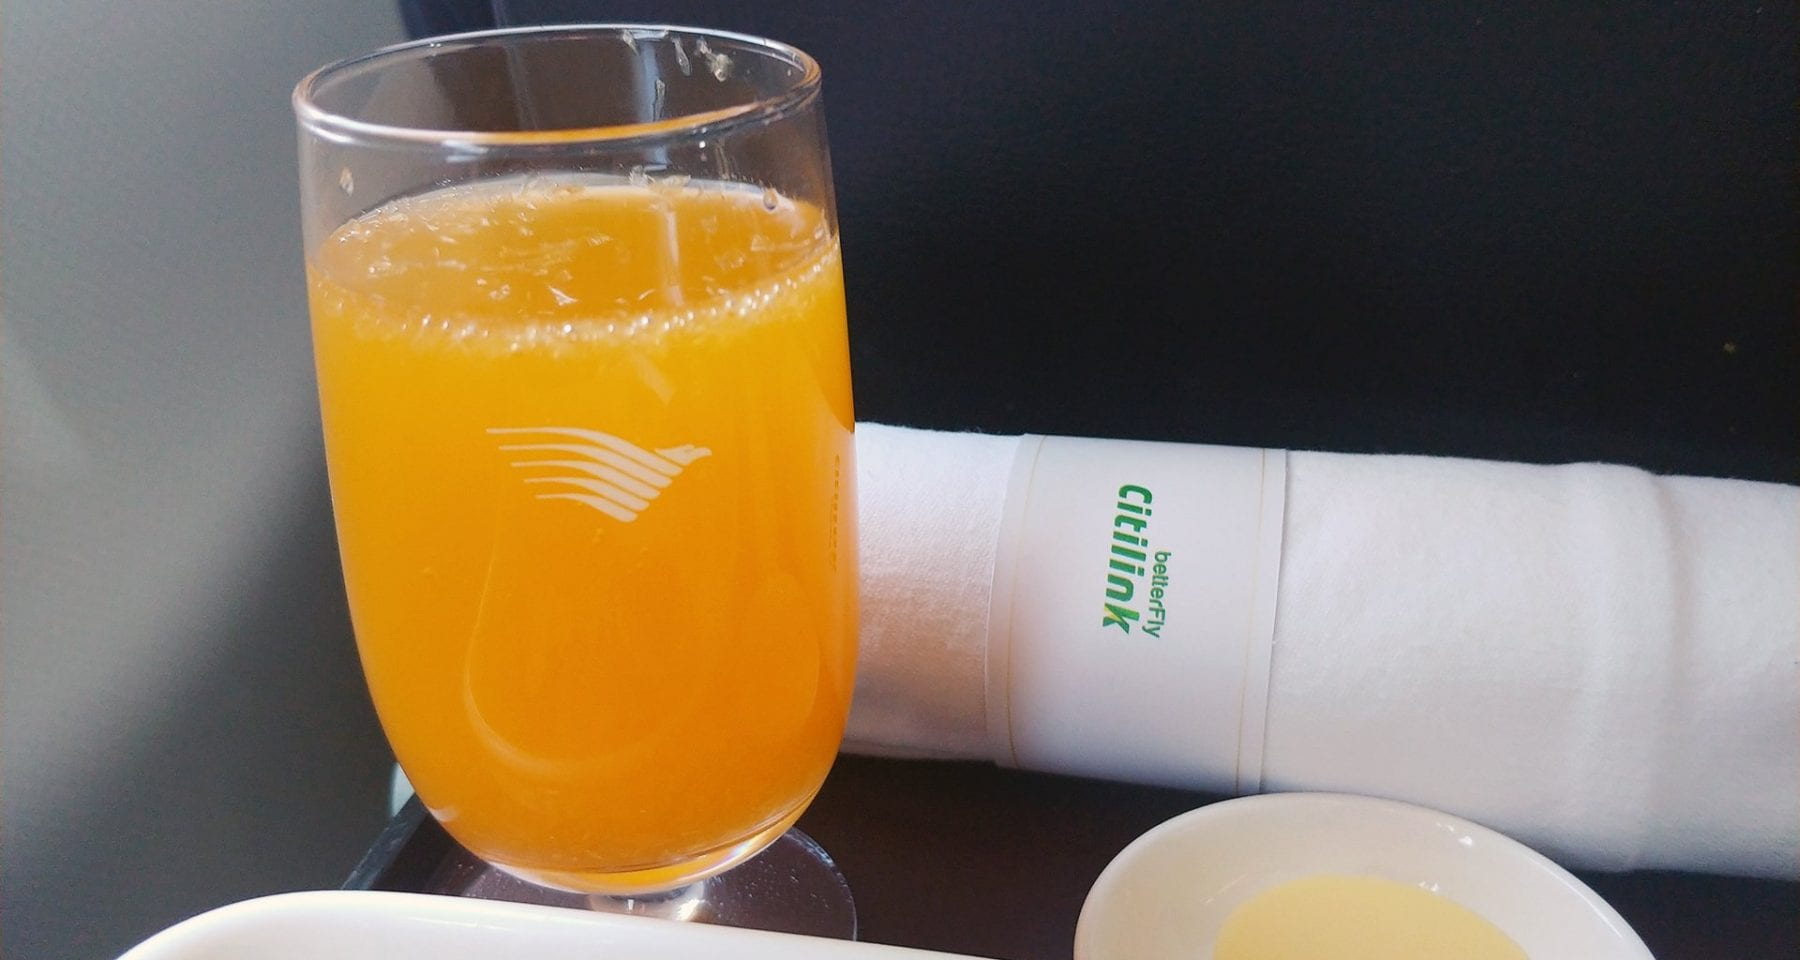 Citilink inflight drinks